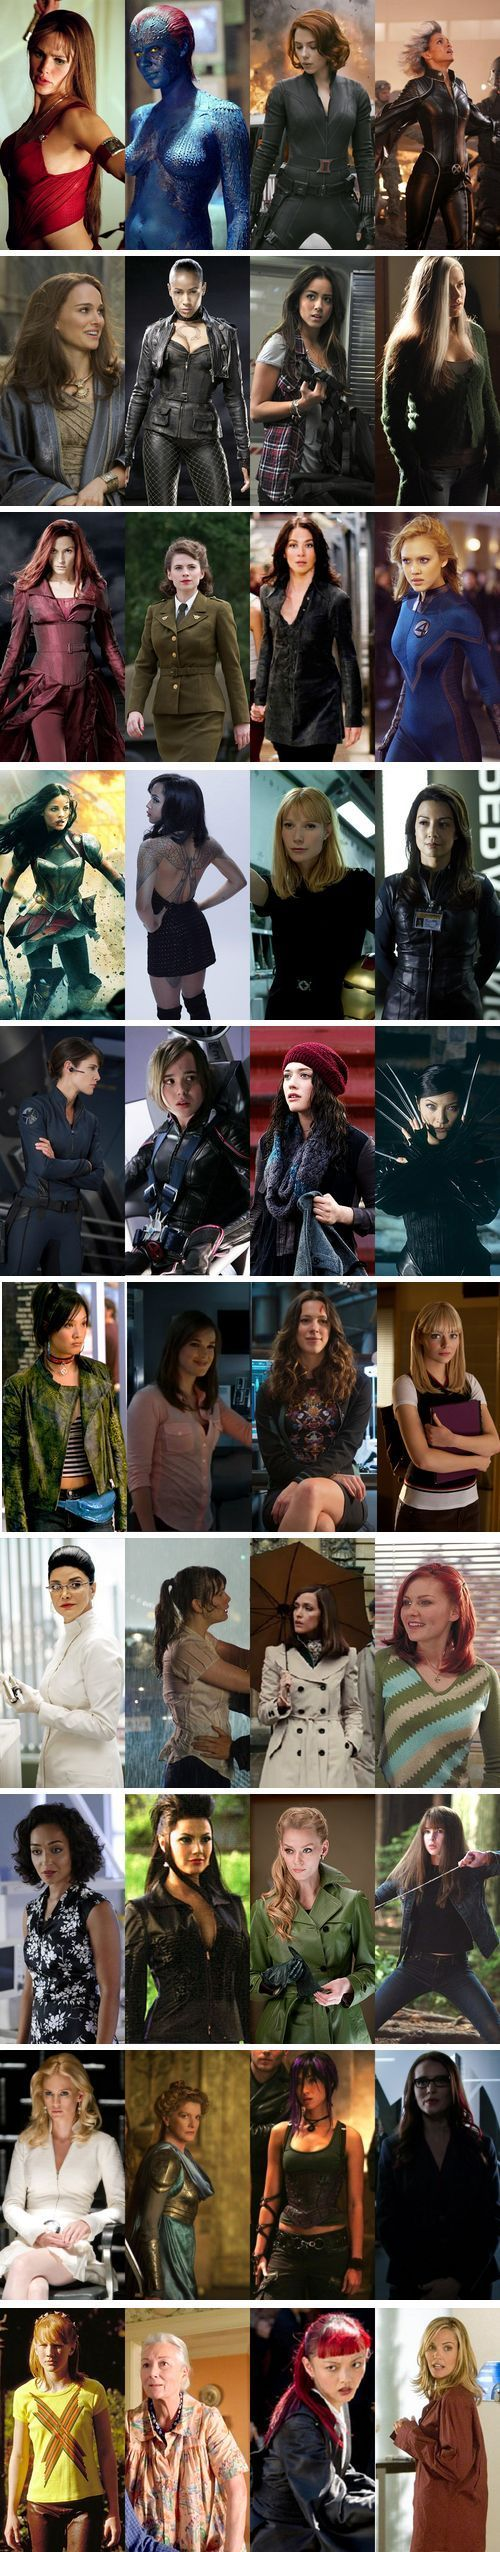 Marvel Women- Elektra, Raven, Natasha, Ororo, Jane, Callisto, Skye, Rogue, Jean, Peggy, Kayla, Sue, Sif, Angel, Pepper, Melinda, Maria, Kitty, Darcy, Yuriko, Jubilee, Jemma, Maya, Gwen, Kavita, Betty, Moira, Mary Jane, Raina, Mary, Viper, Abby, Emma, Frigga, Elizabeth, Victoria, Theresa, May, Yukio Christine::